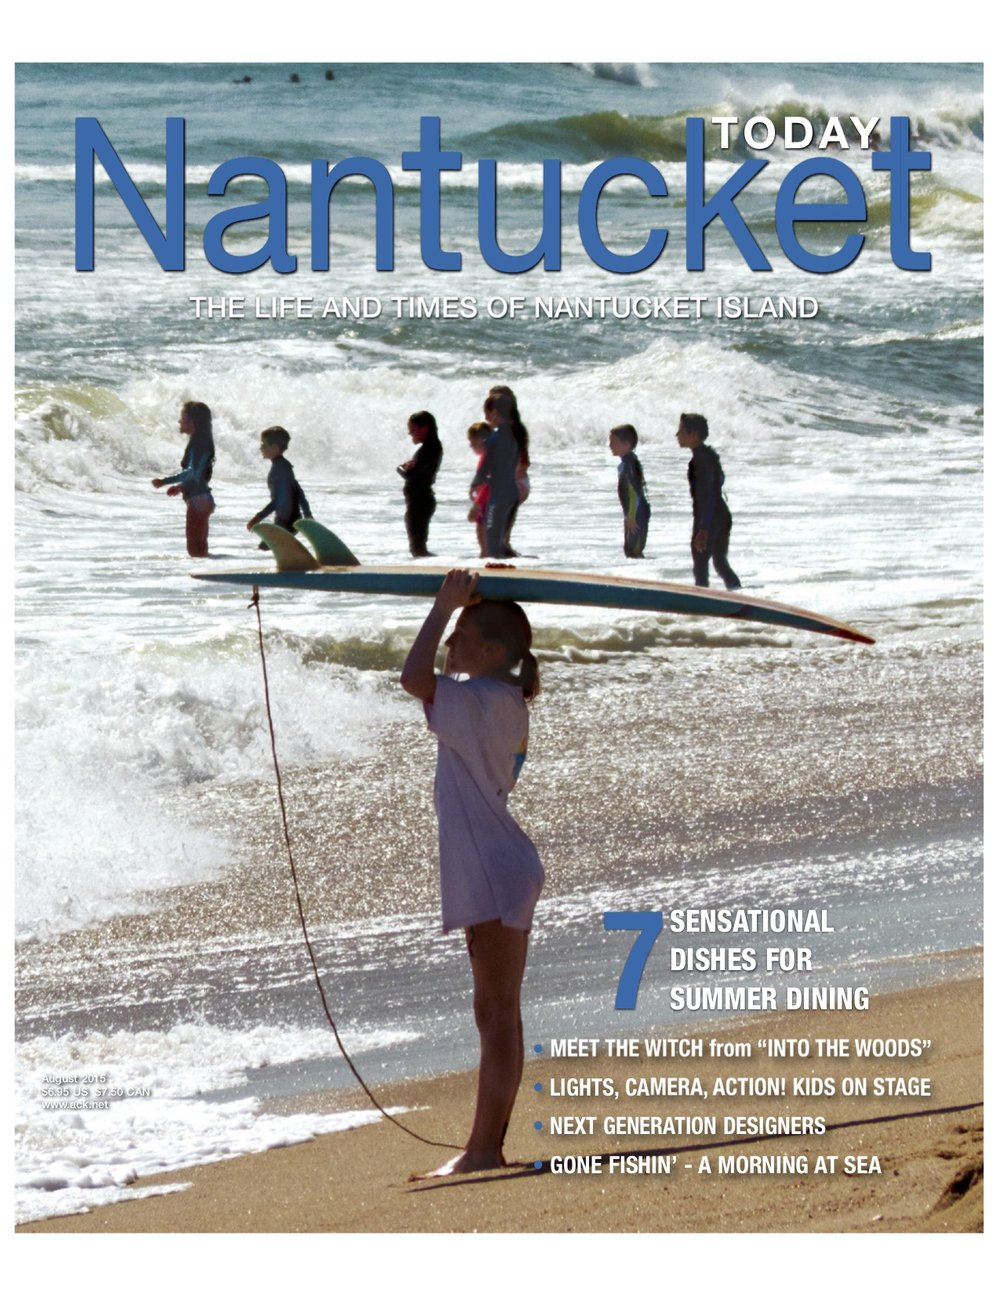 nantucket today.jpg